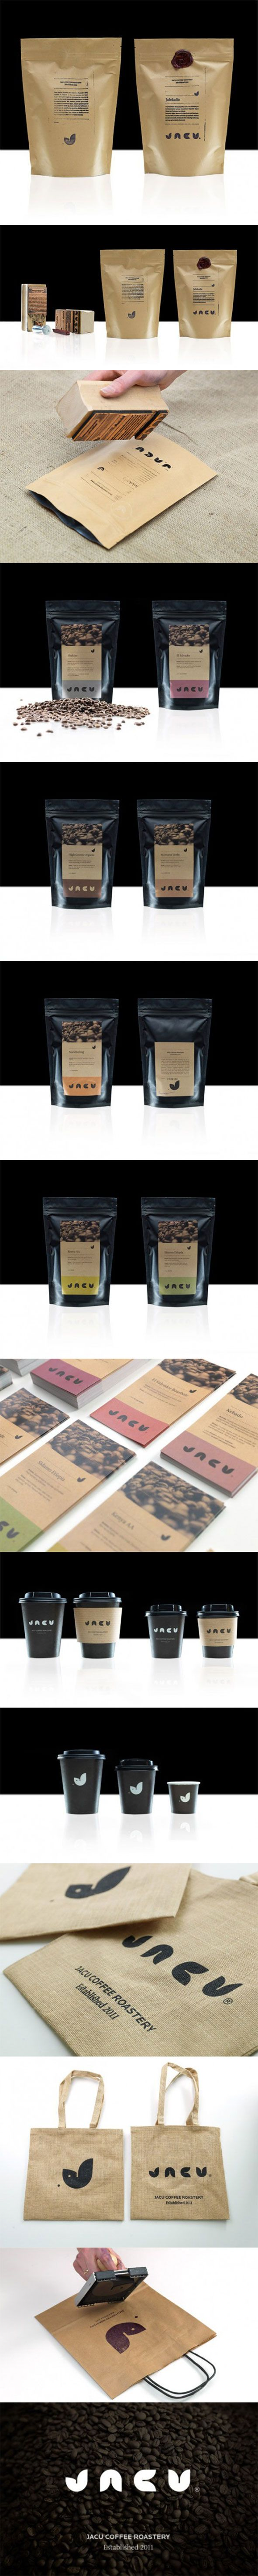 Jacu Coffee Roastery via Lovely Package curated by Packaging Diva PD identity packaging branding marketing